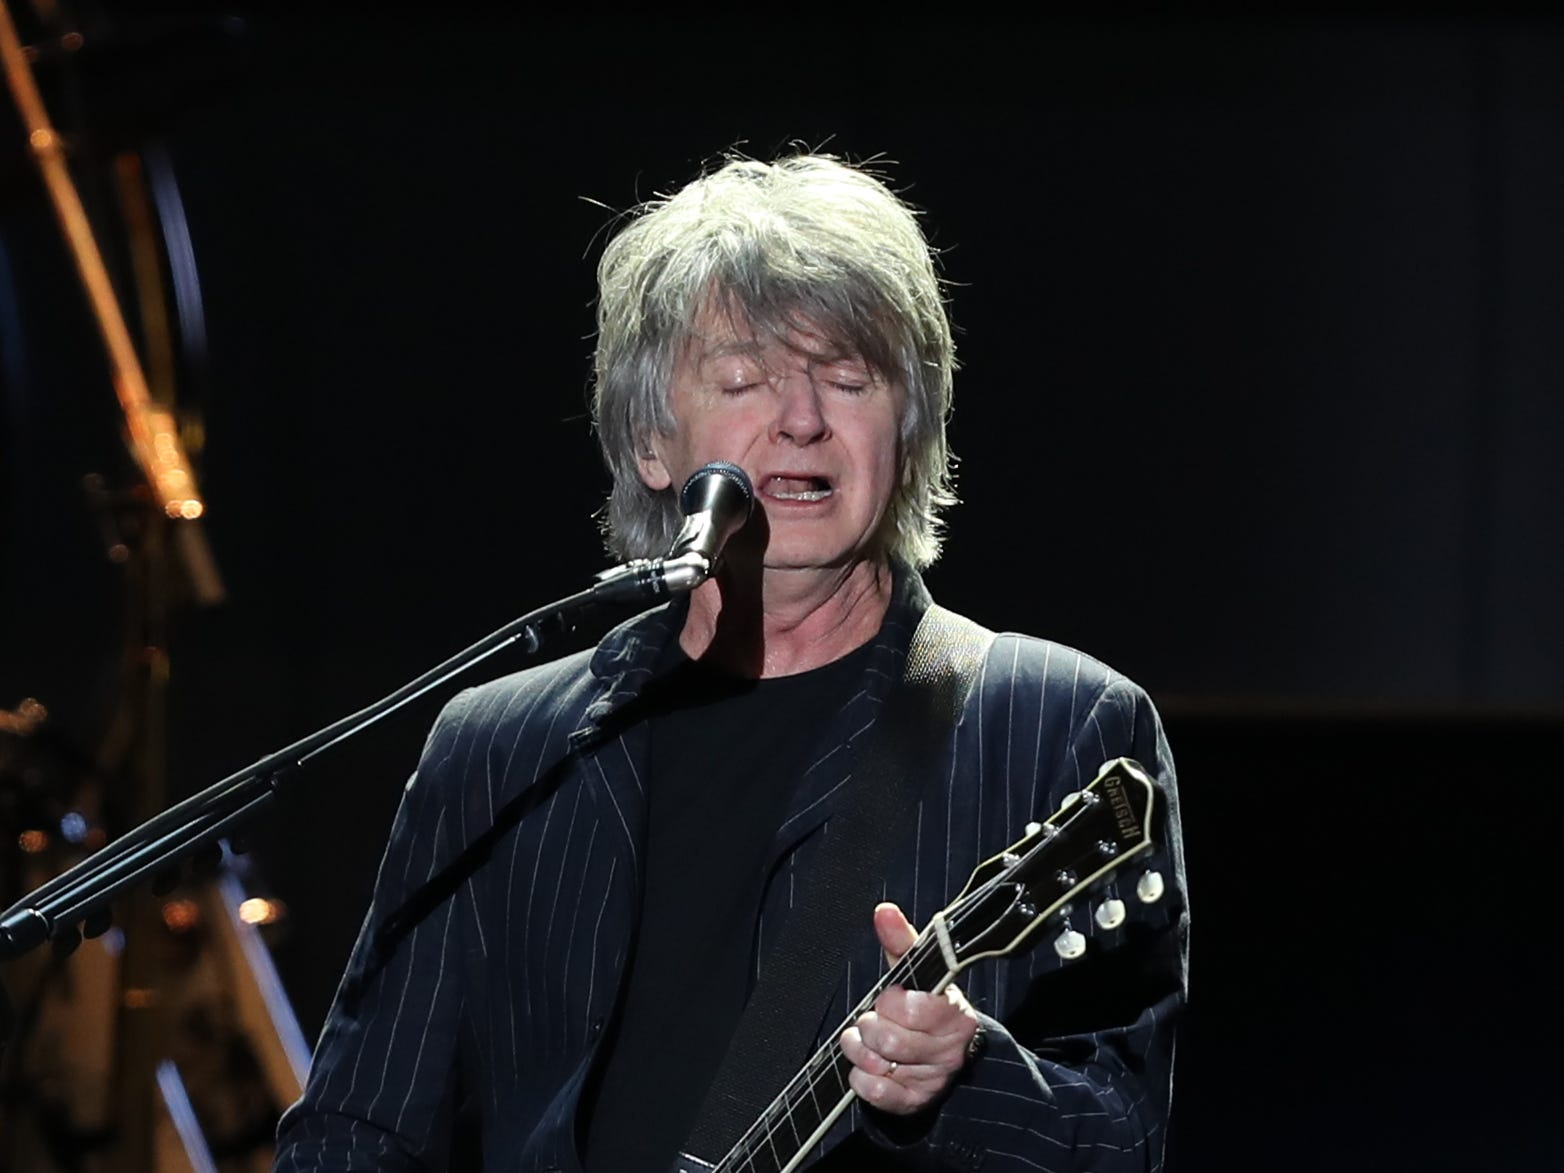 Neil Finn of Fleetwood Mac performs at Wells Fargo Arena in Des Moines, Iowa on Oct. 14, 2018.